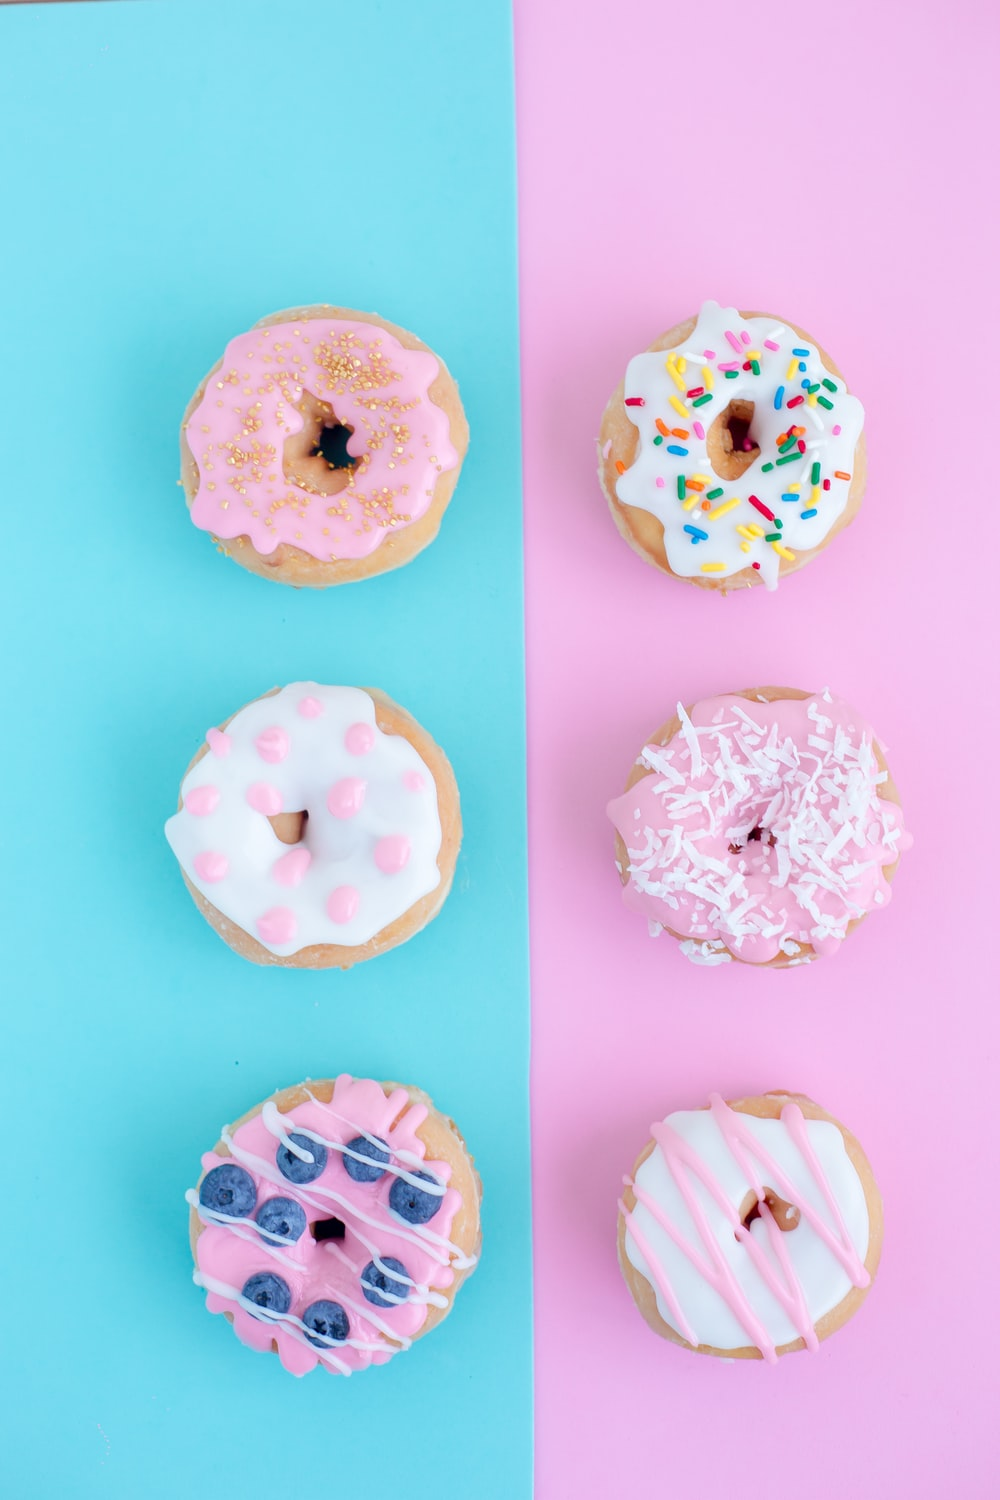 Pink Donut Pictures Download Free Images On Unsplash